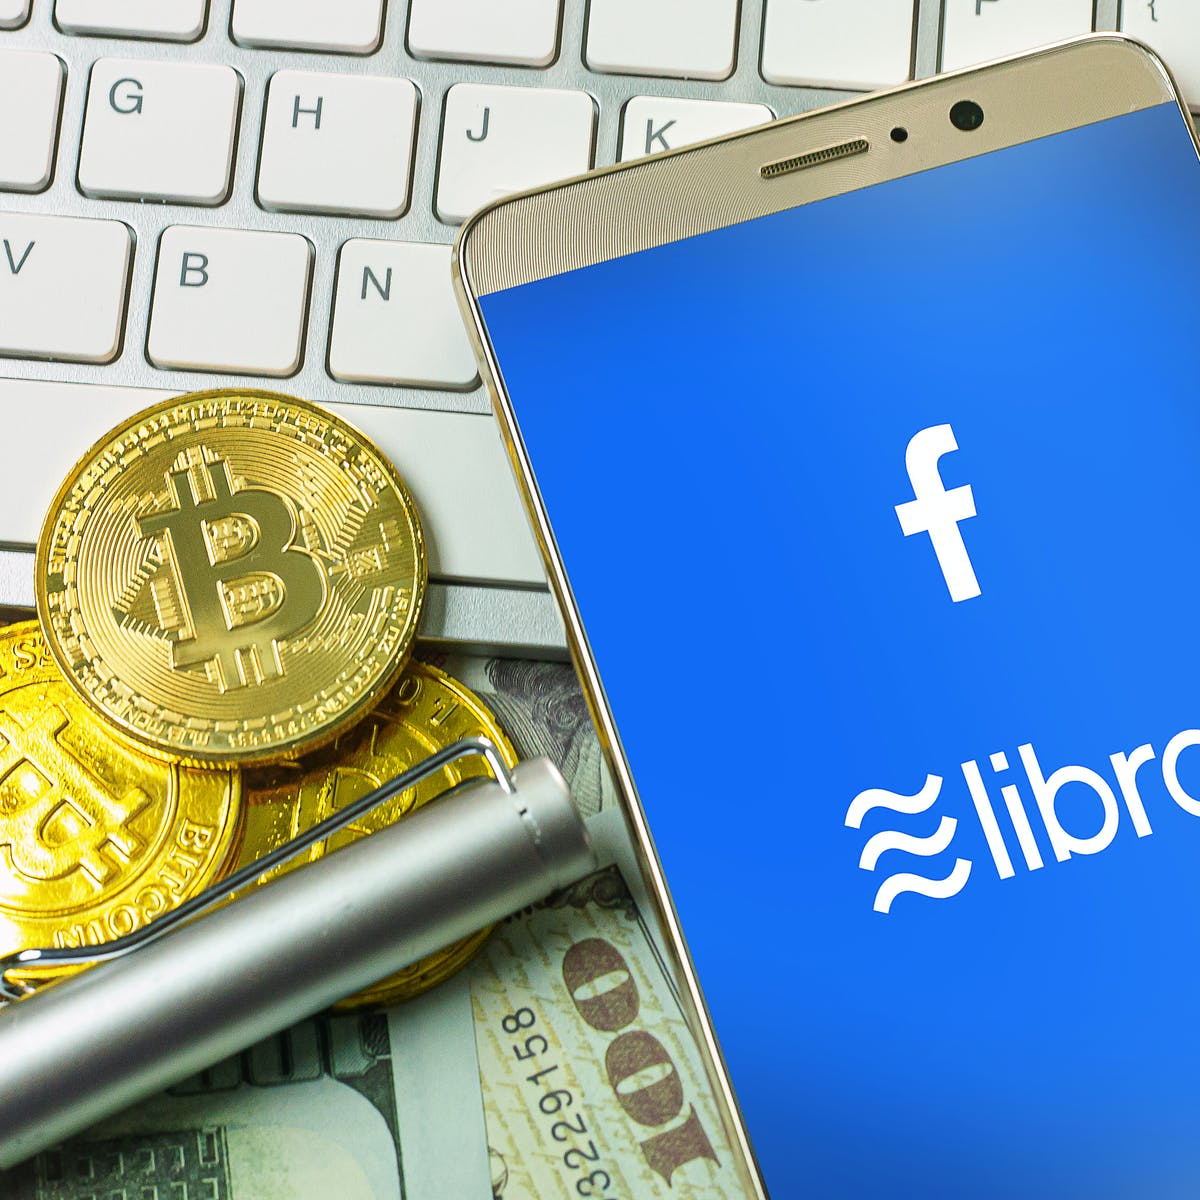 can i invest in libra cryptocurrency